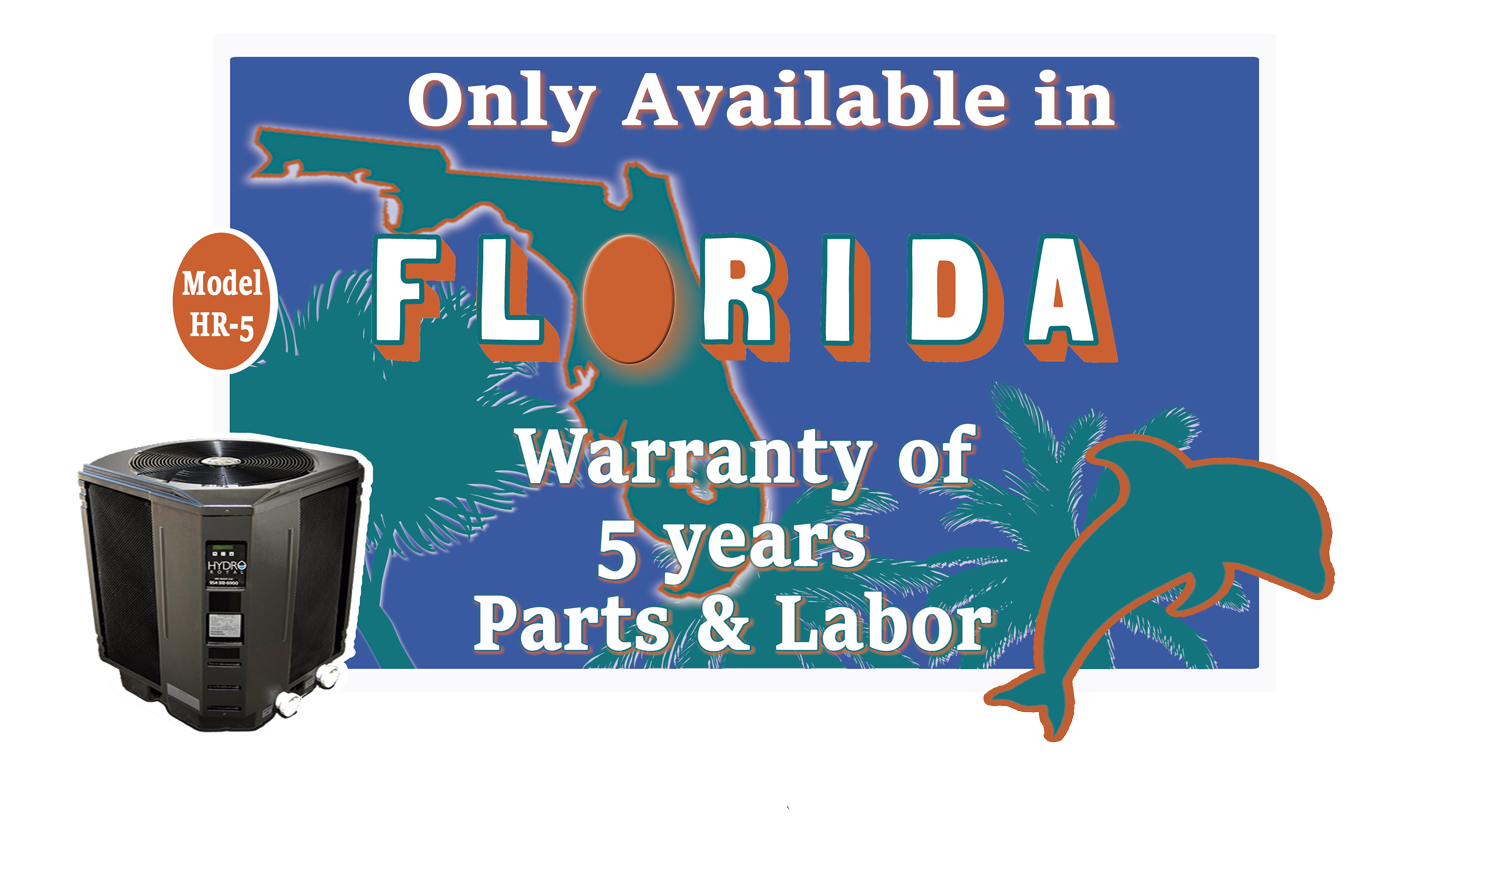 HR-5 Florida Only